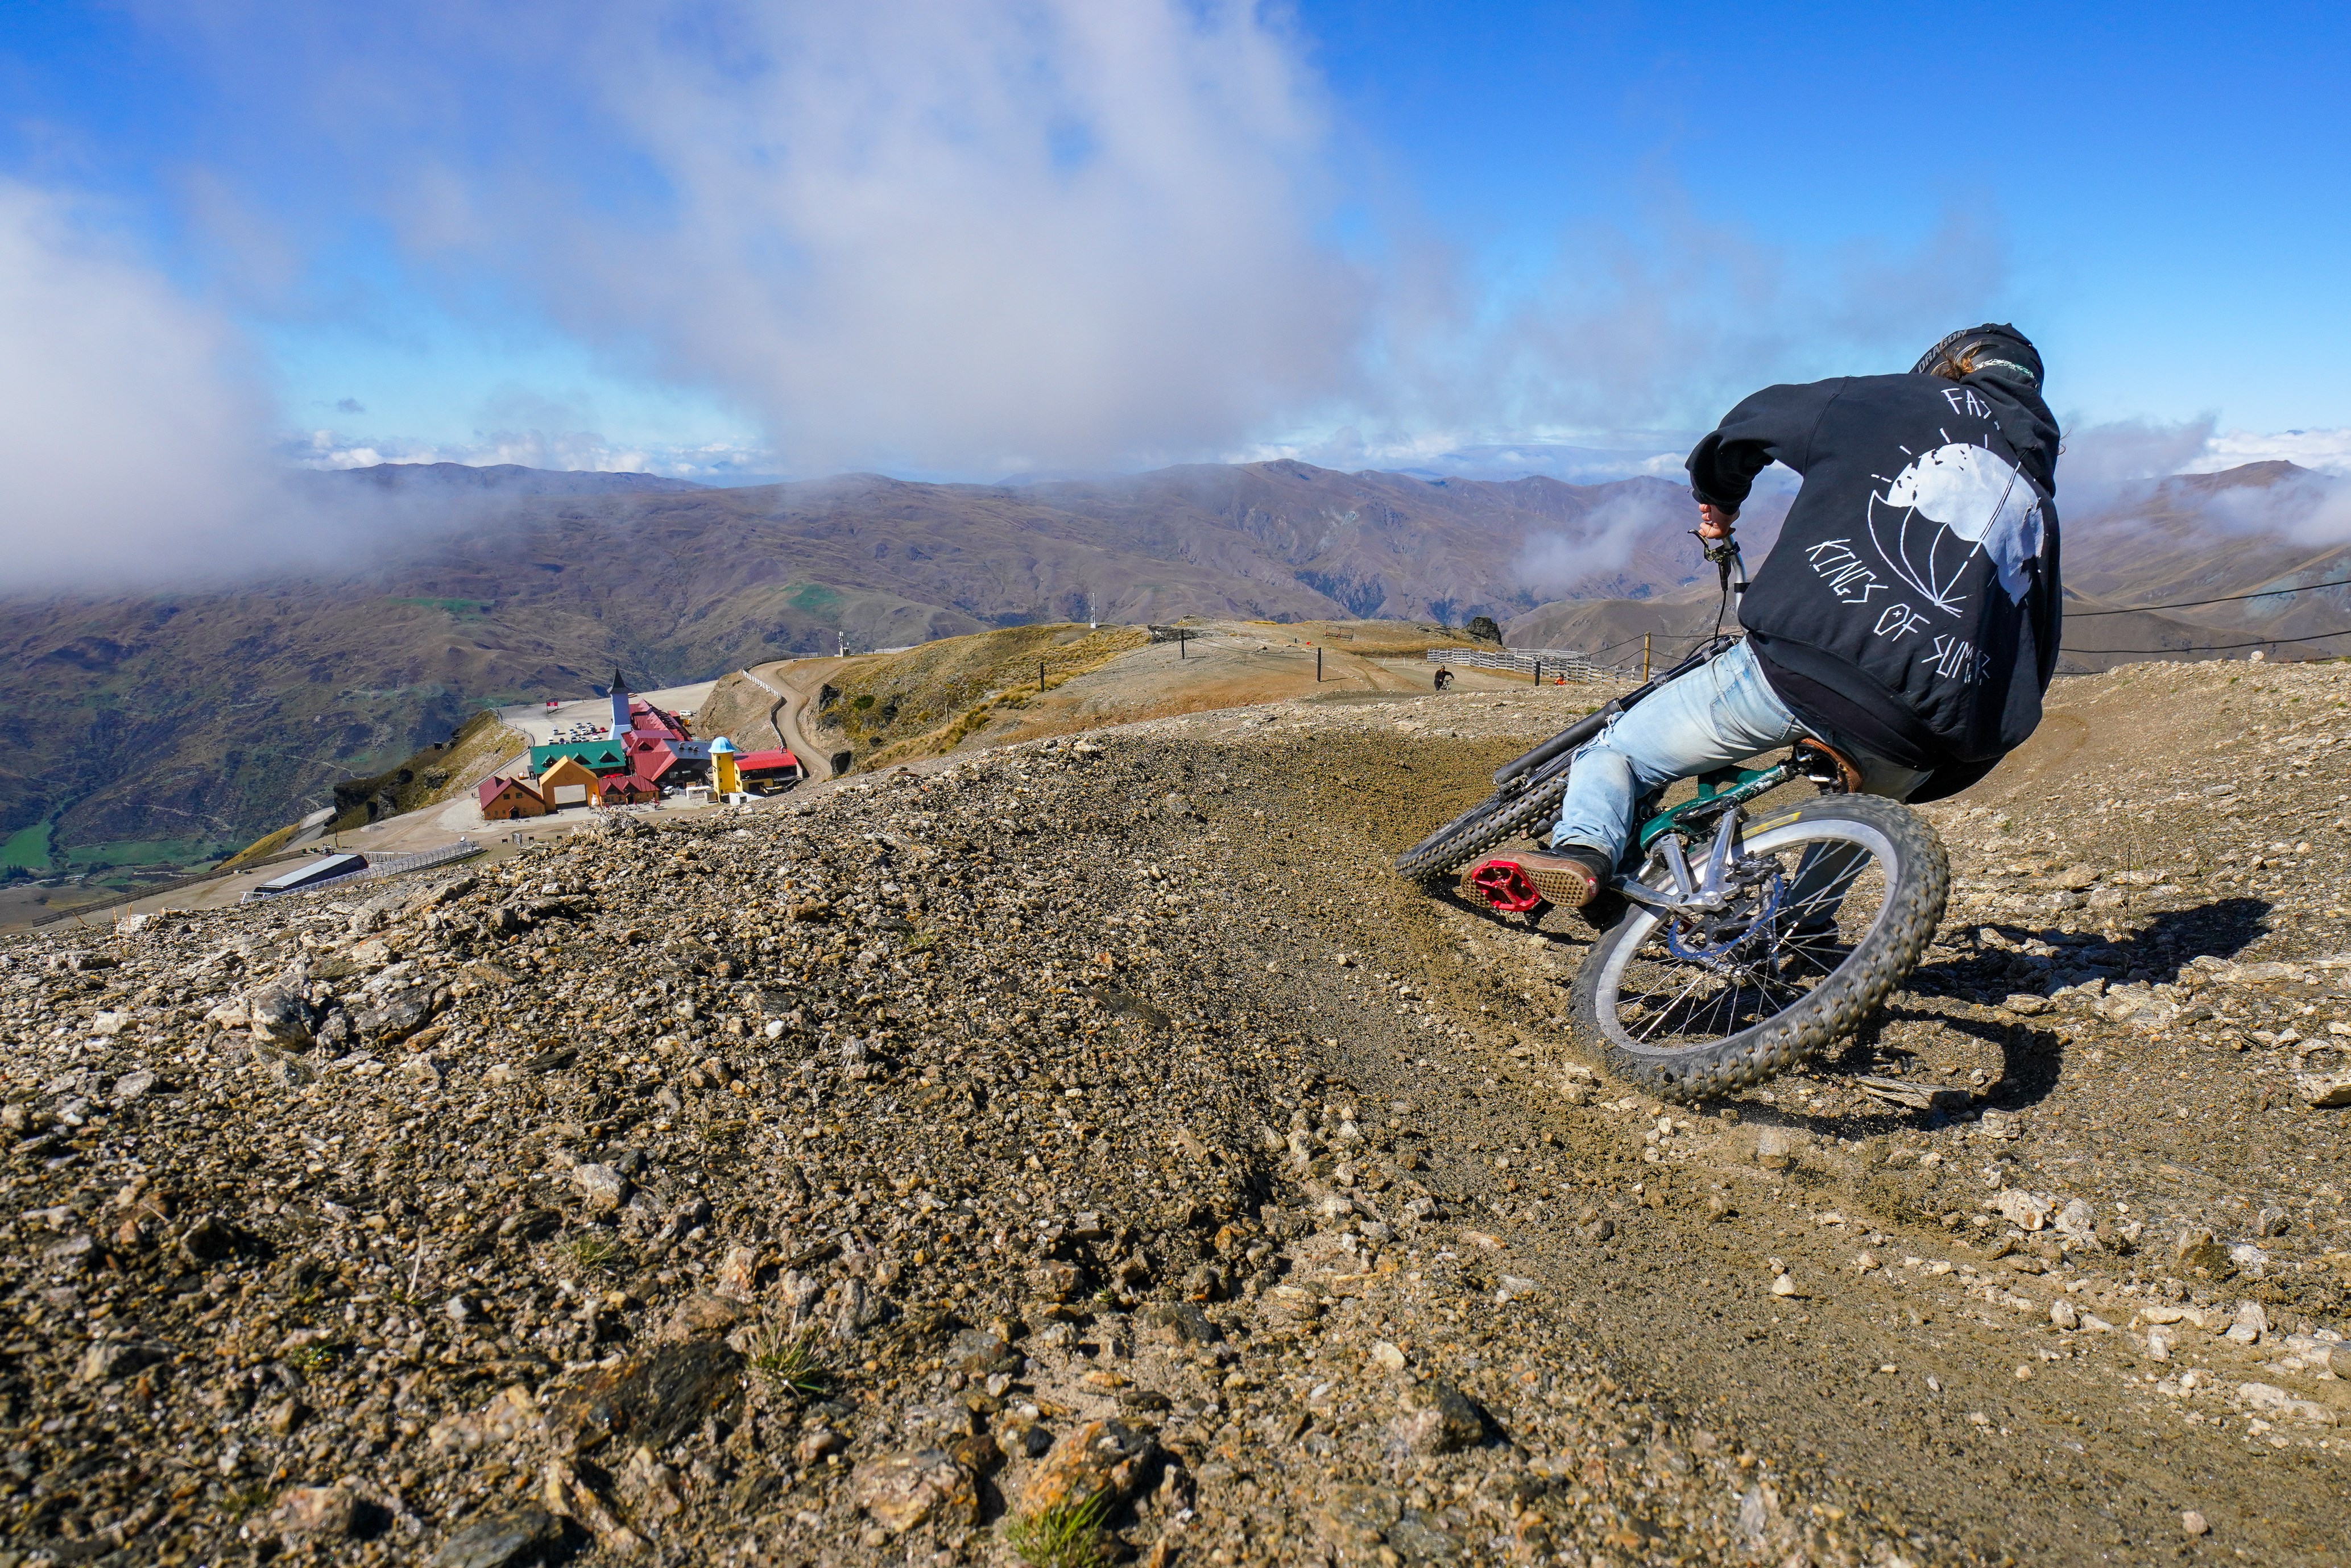 cardrona mountain bike park afternoon delight mountain biking